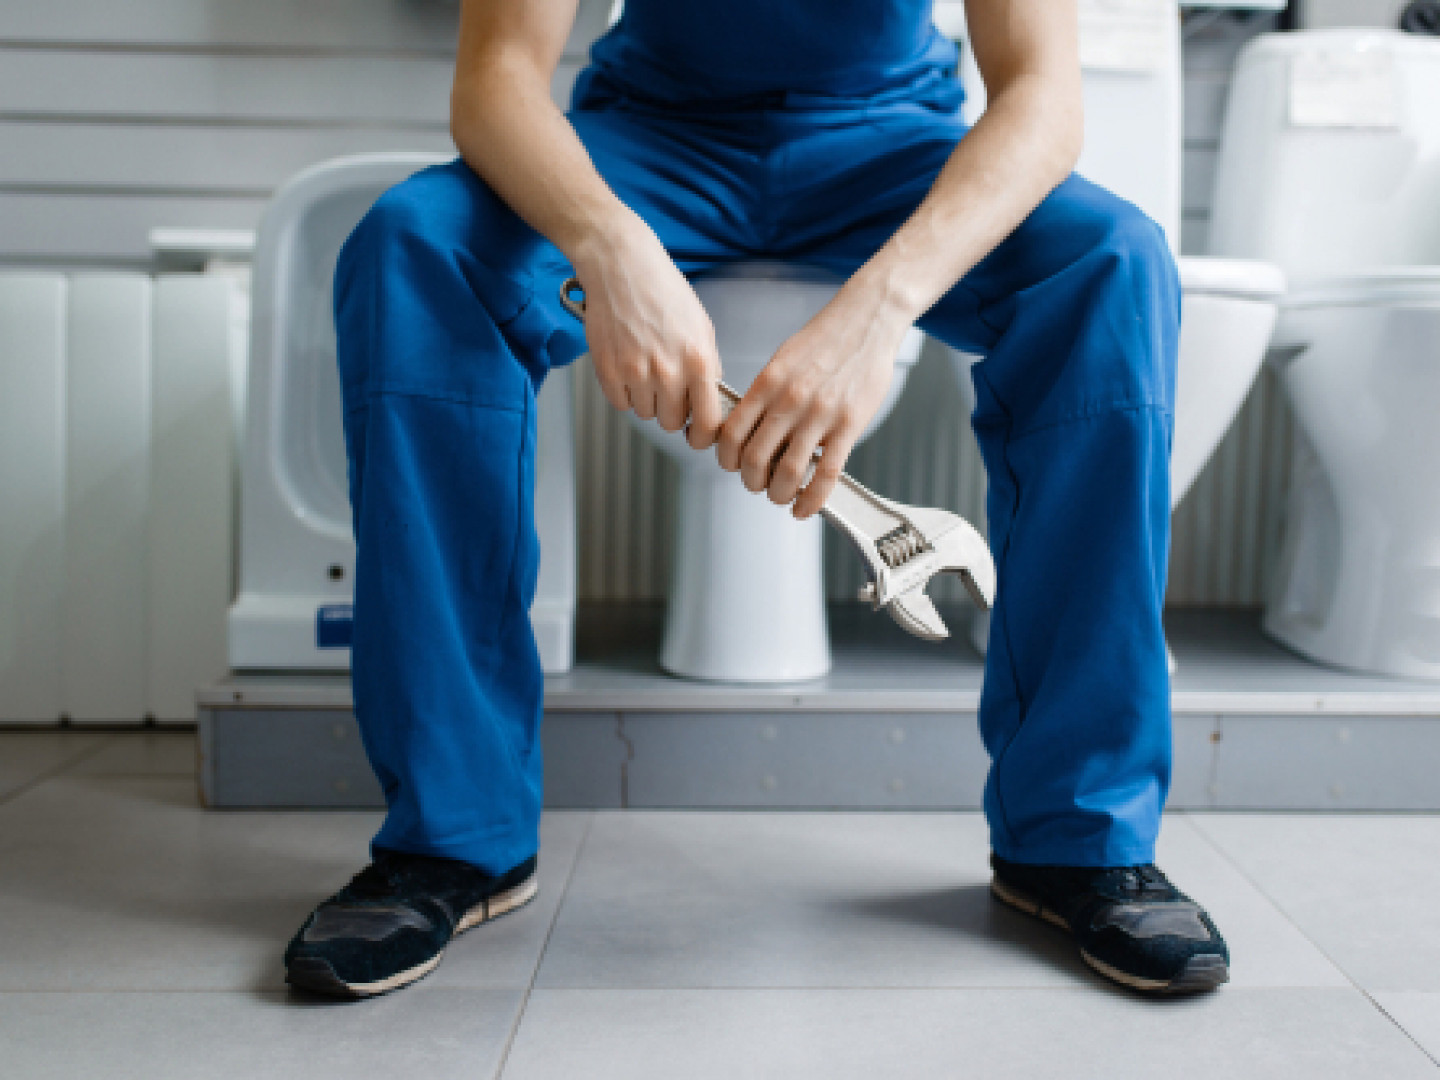 5 signs it's time to call a plumber